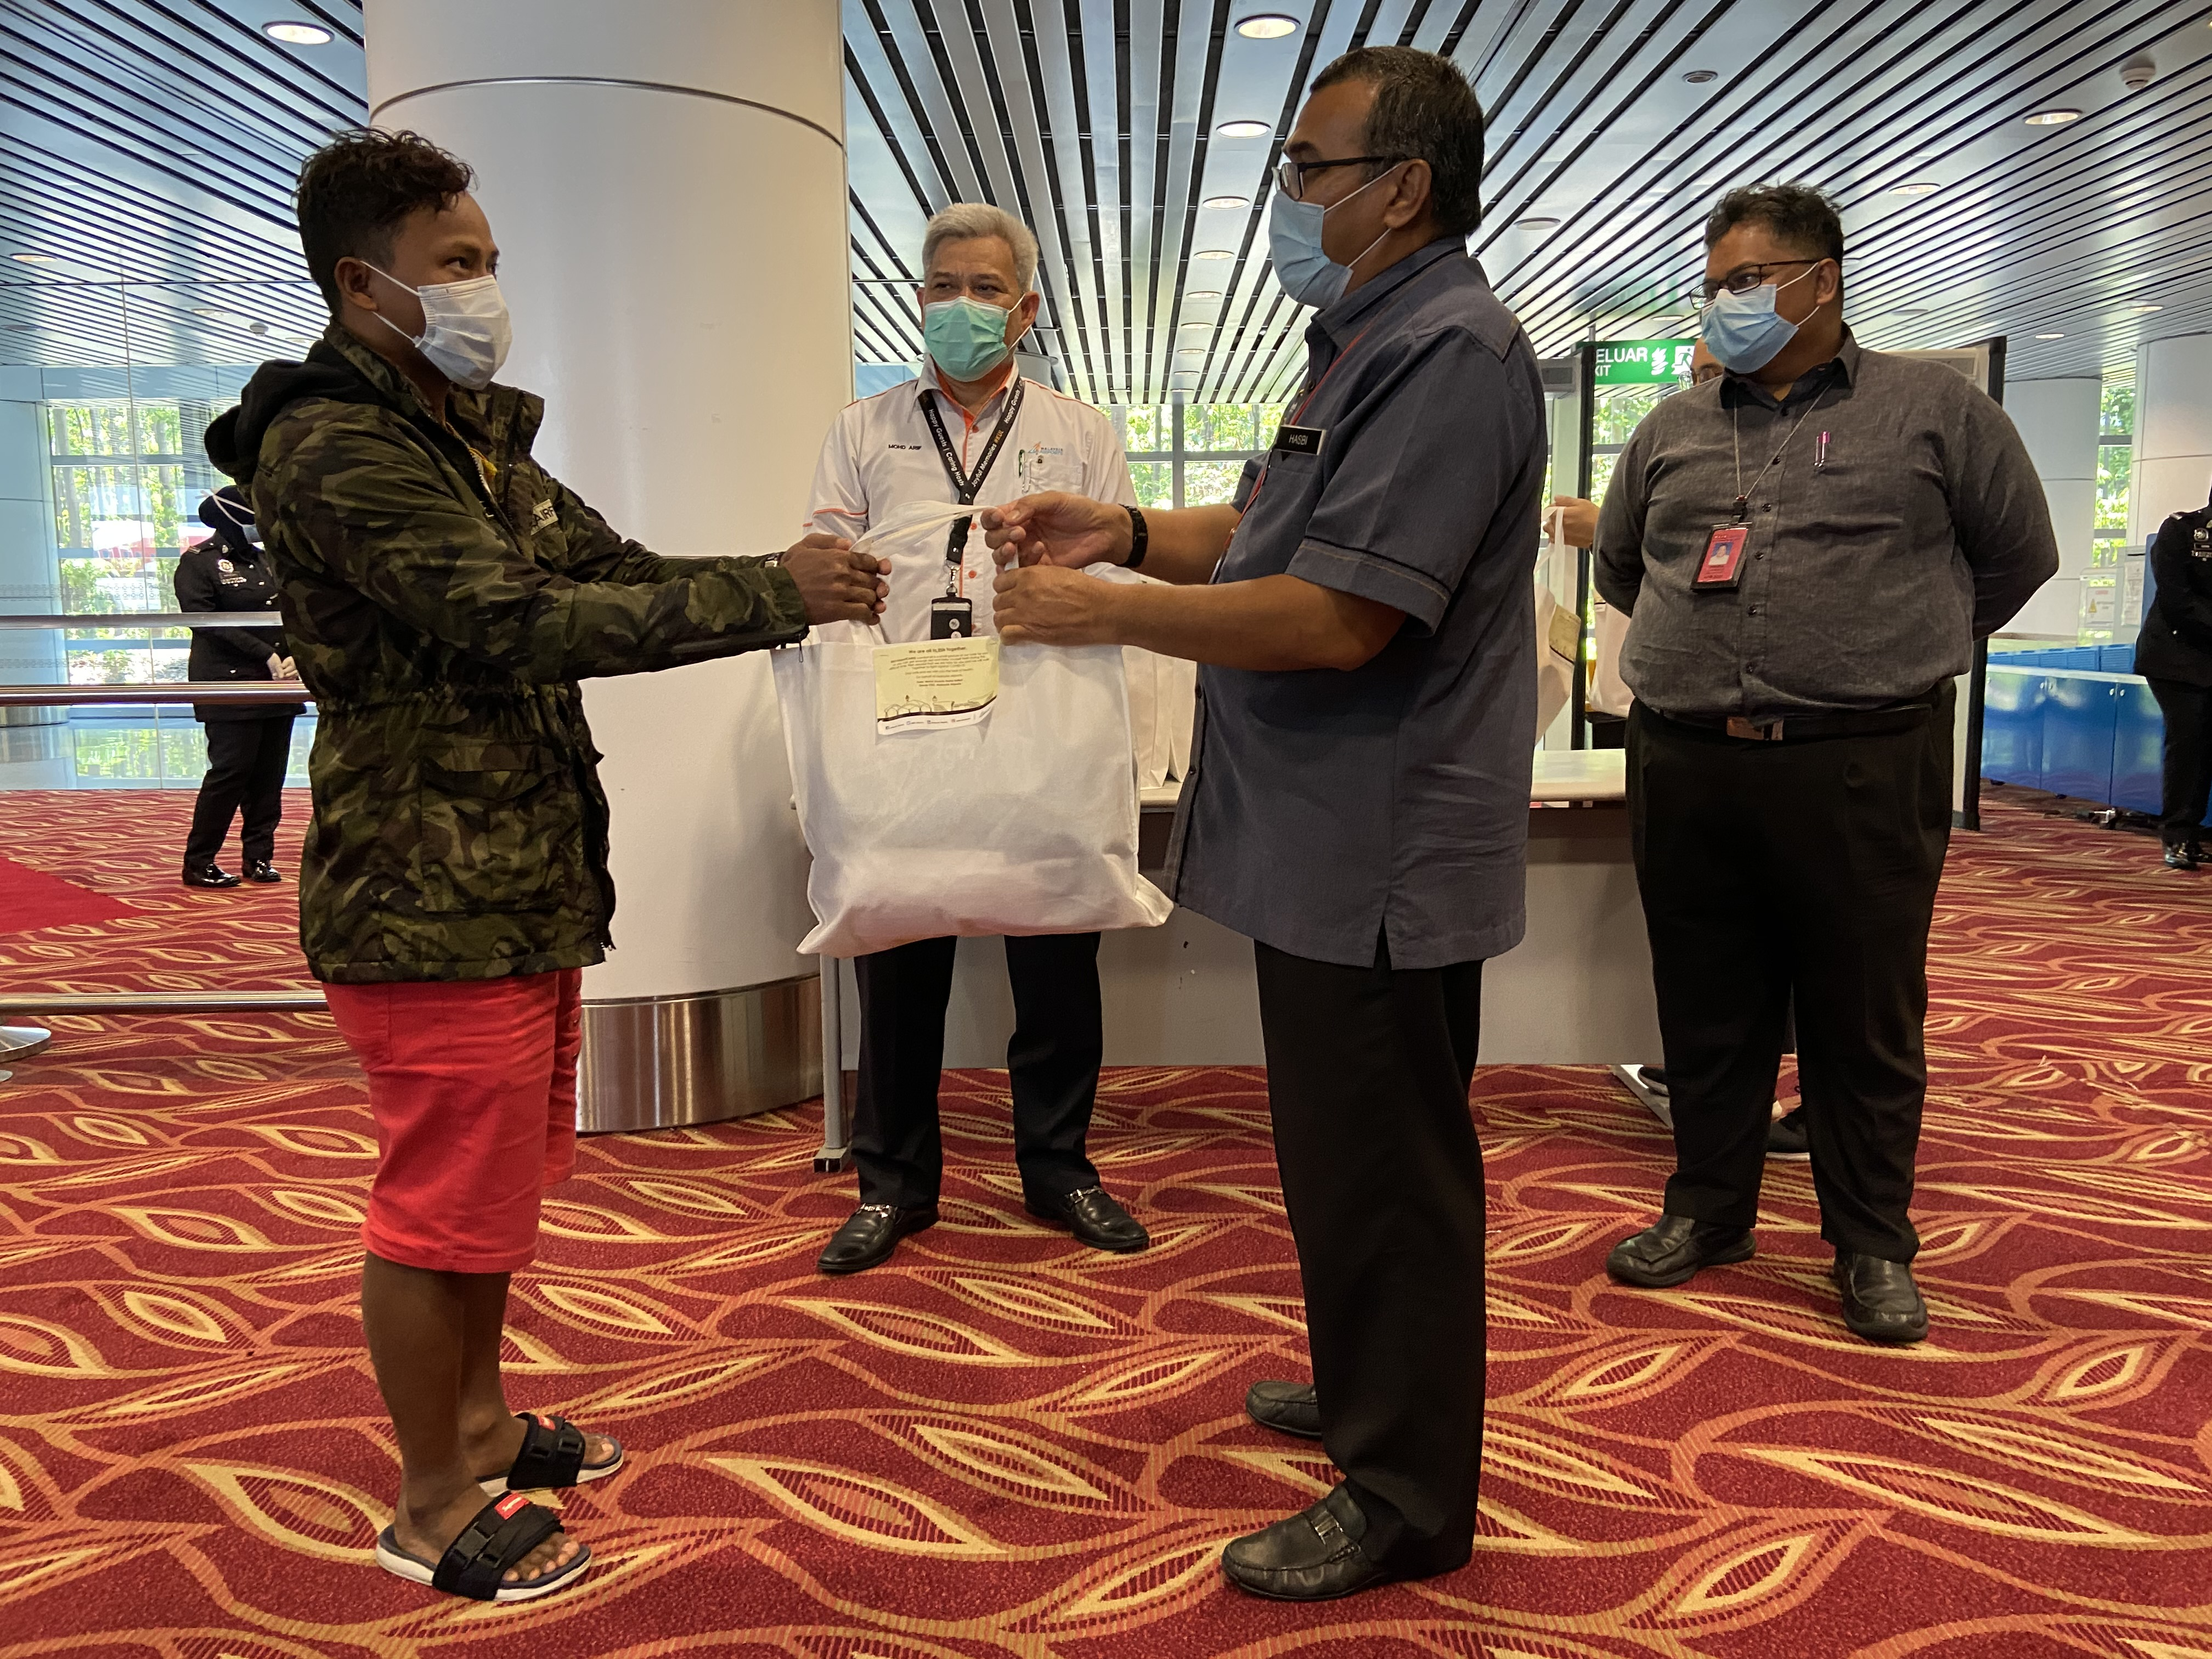 A stranded passenger receiving a comfort kit from Hasbi Habibollah, Deputy Minister of Transport Malaysia during his visit to KL International Airport (KLIA) recently.